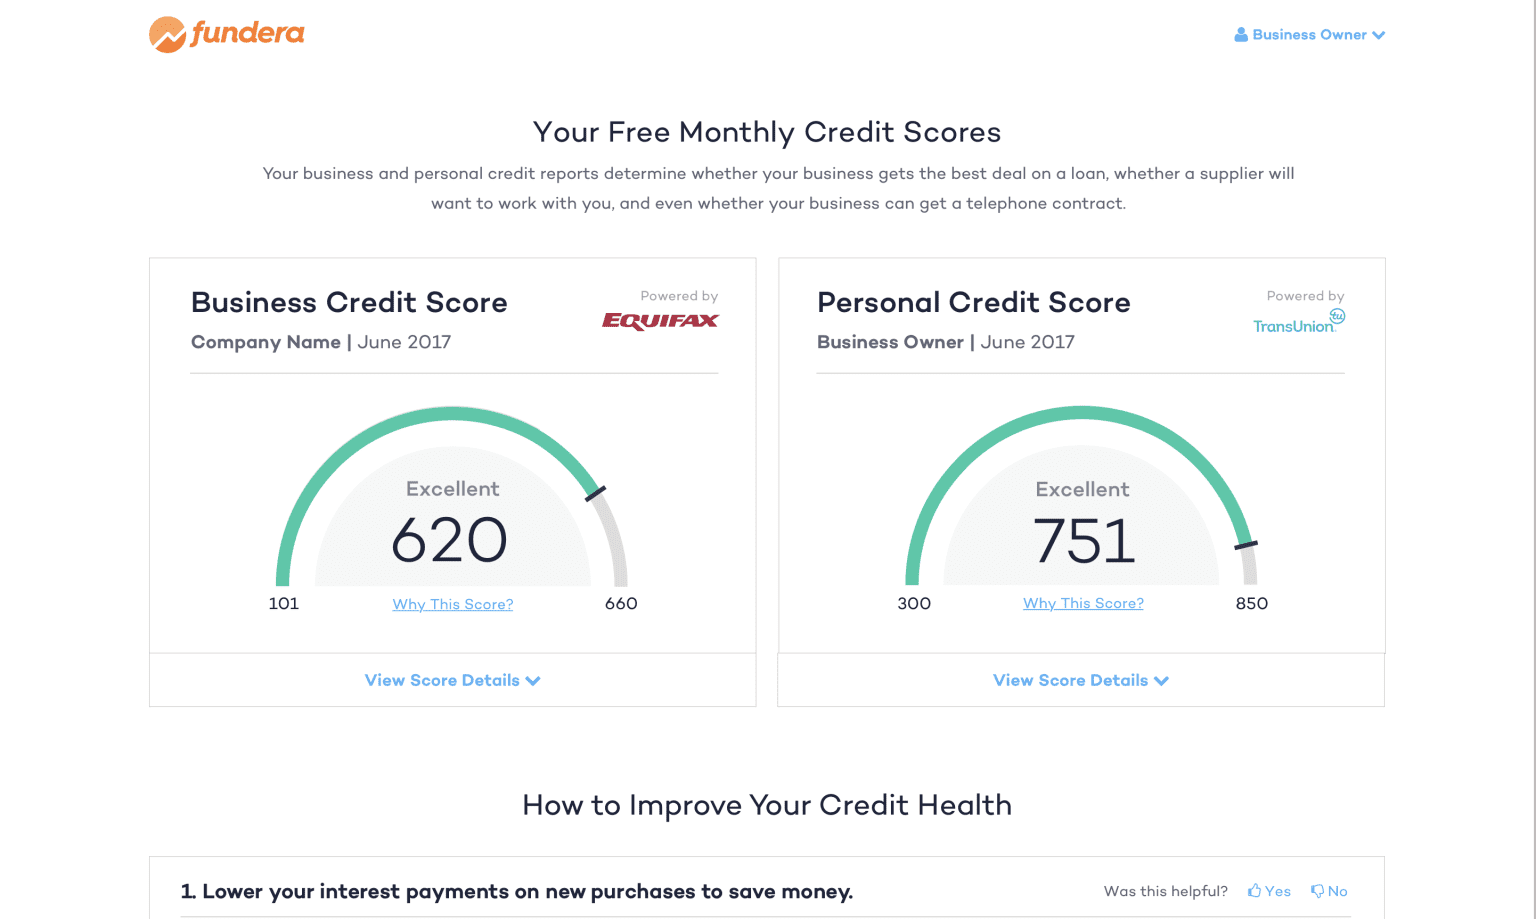 Empowering Small Business Owners with Free Credit Reports